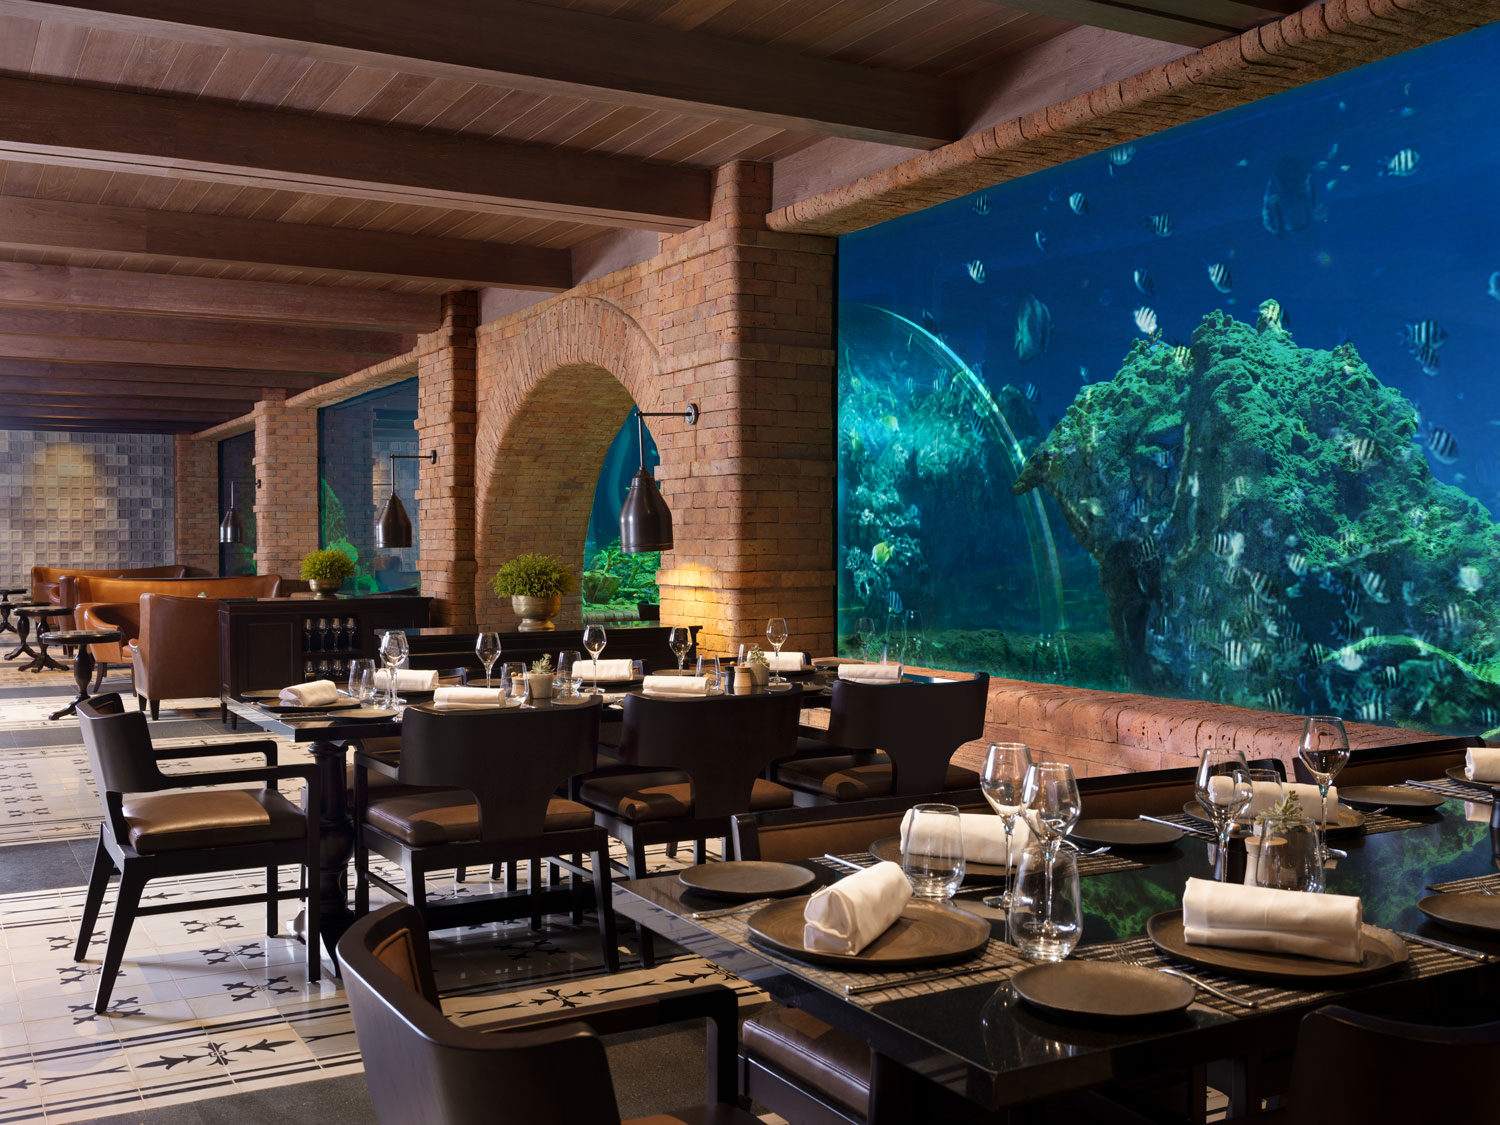 https://highend-traveller.com/the-apurva-kempinski-bali-reintroduces-koral-restaurant-balis-first-aquarium-restaurant/